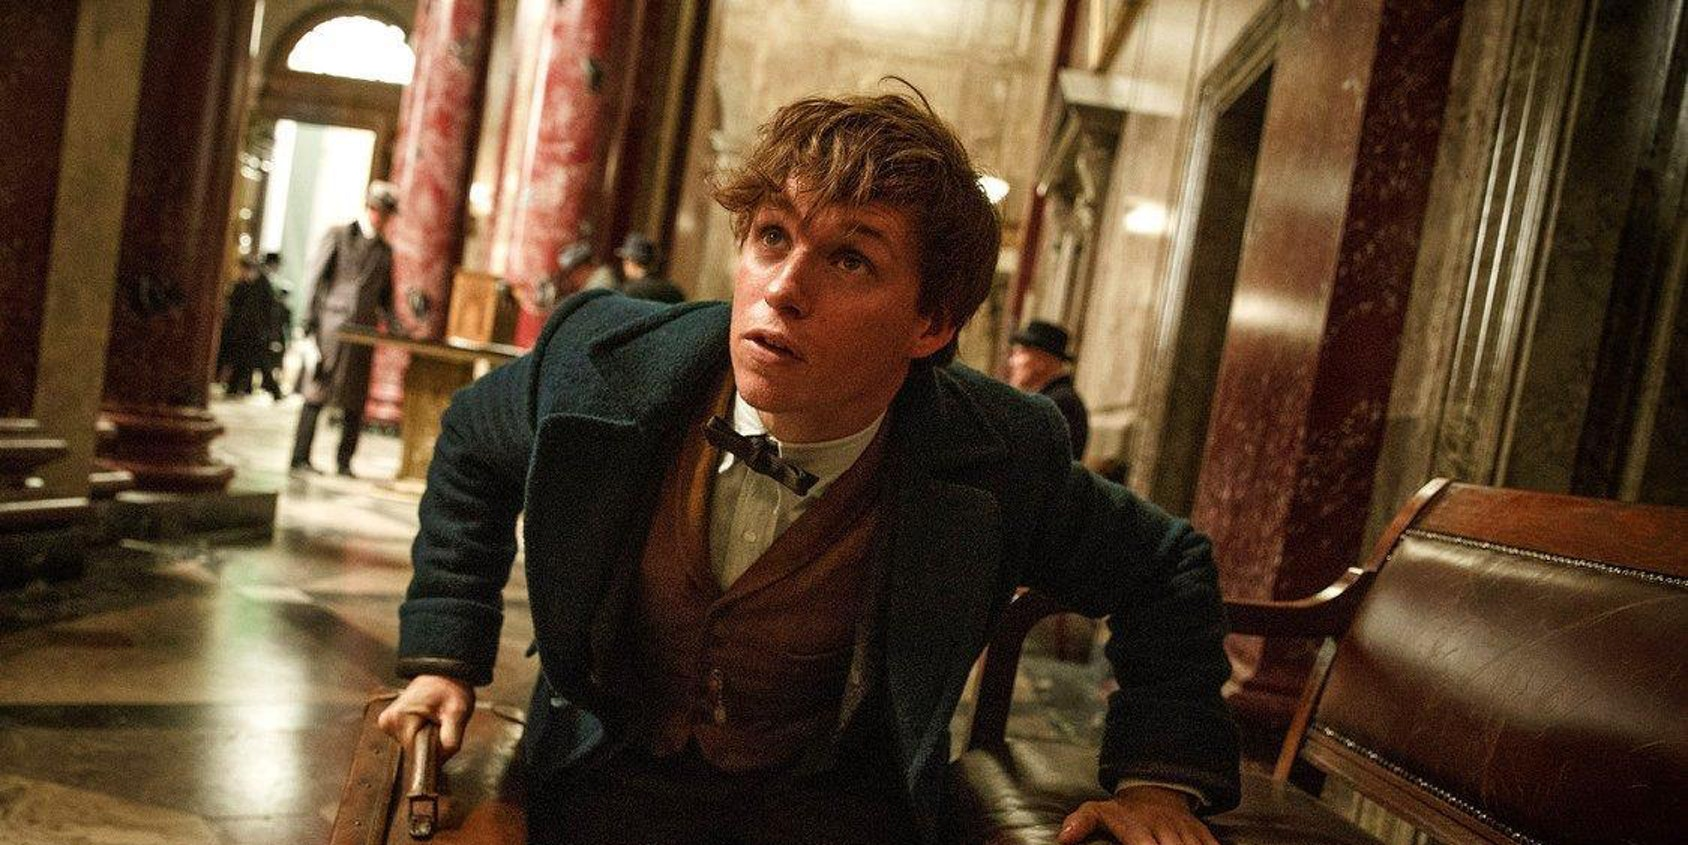 'Fantastic Beasts' Introduces Magic We've Never Seen Before